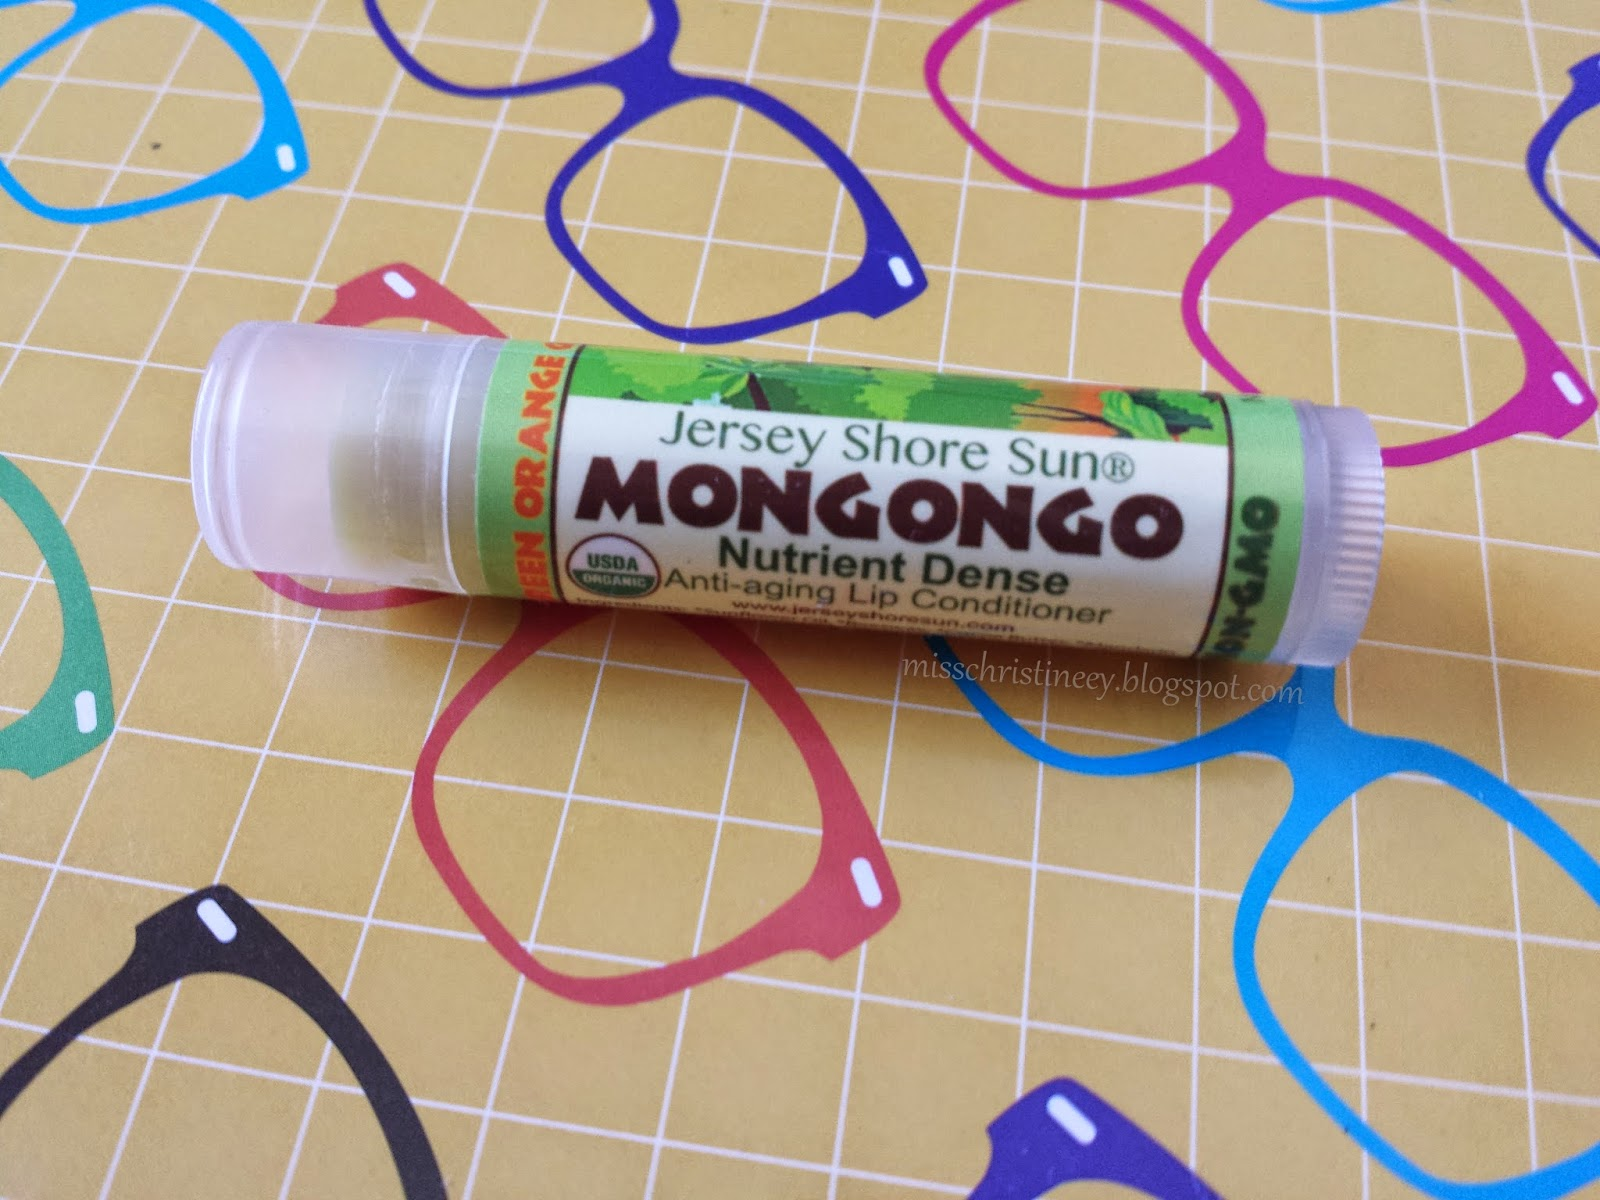 jersey shore sun mongongo lip conditioner